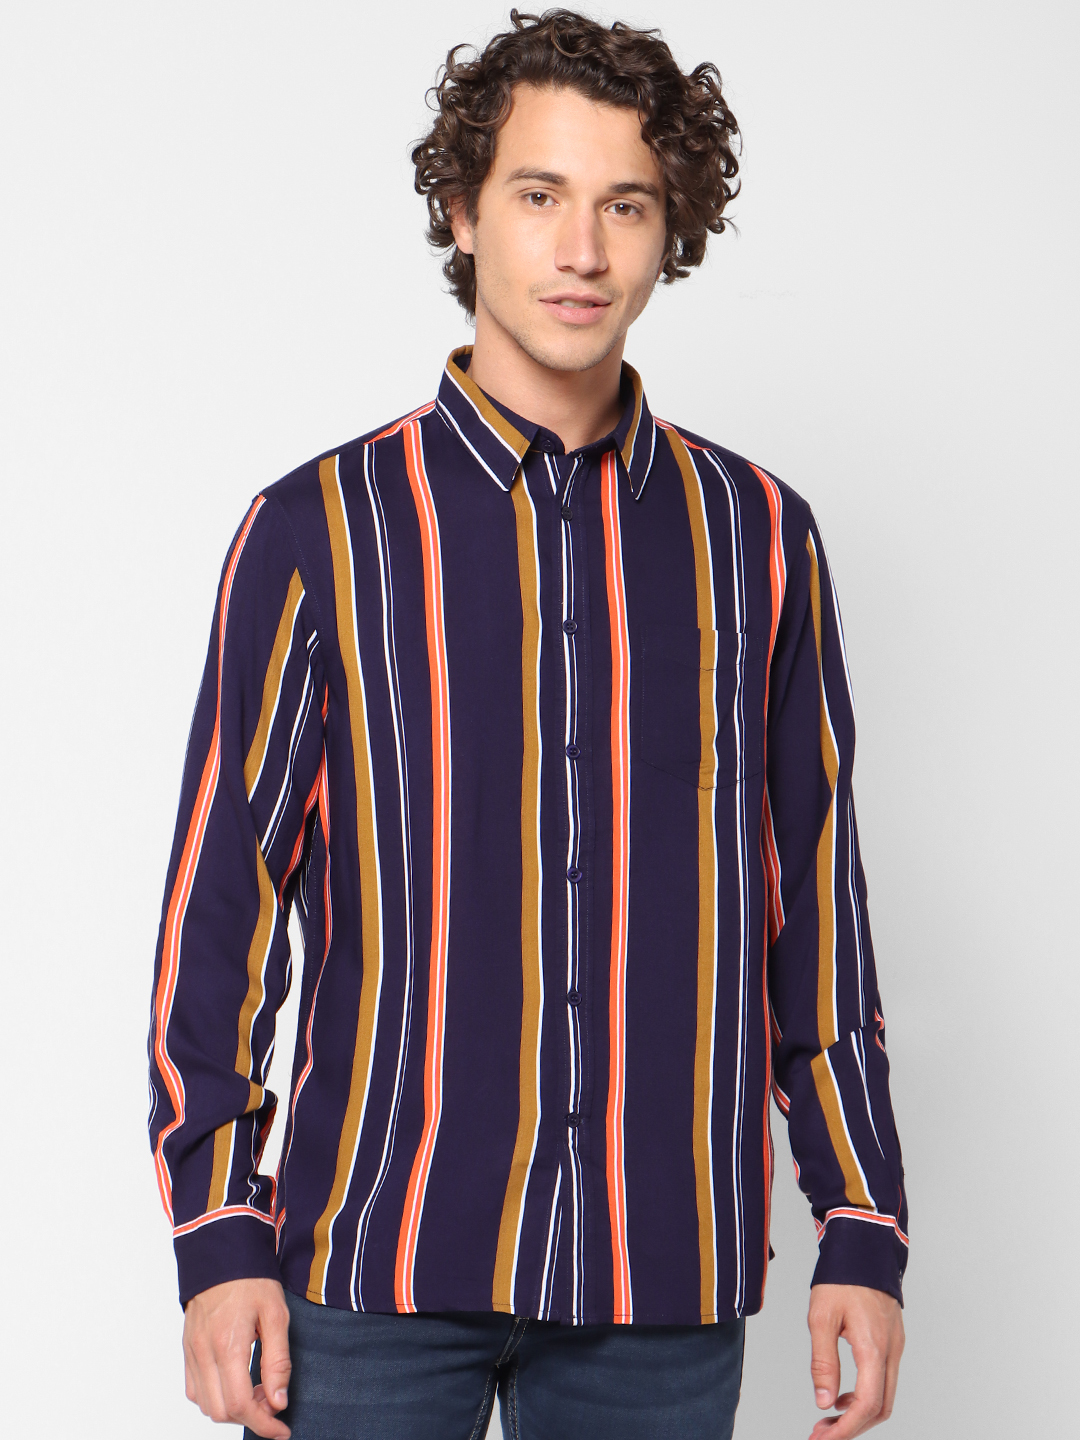 celio | Regular Fit  Soft Touch  Shirts